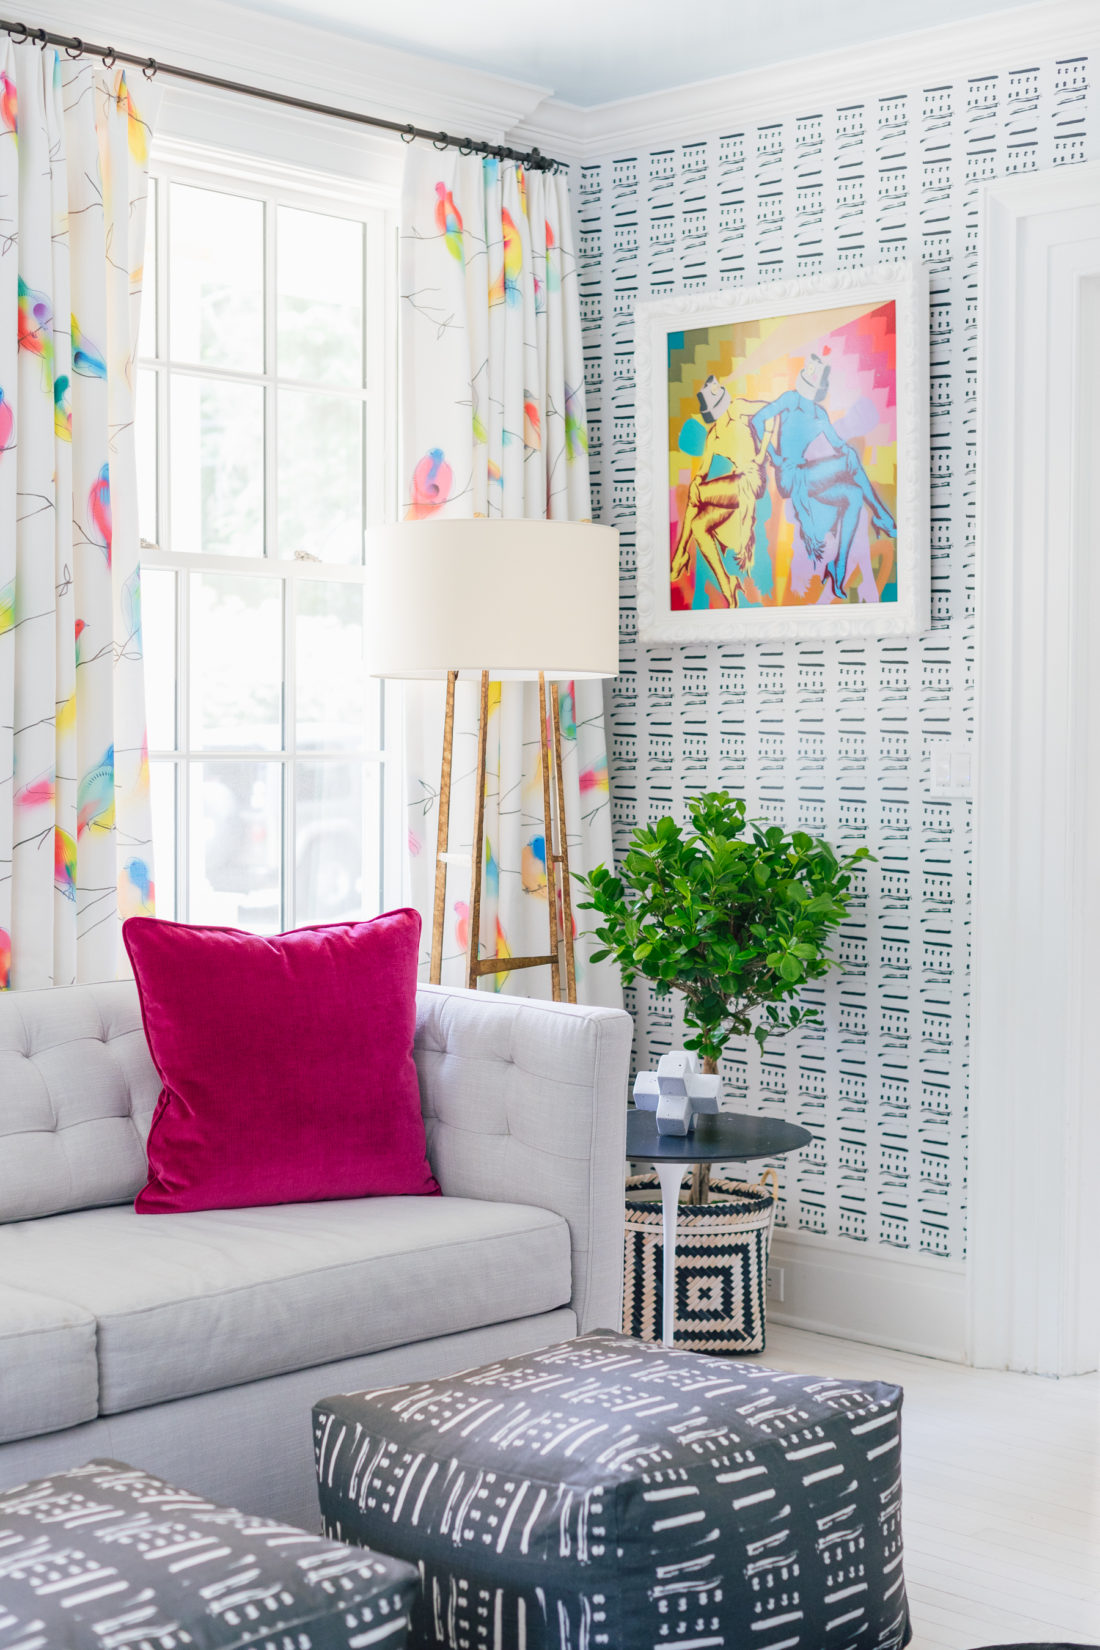 Abstract Kerri Rosenthal wallpaper alongside colorful window drapery from Flat Vernacular in the playroom of Eva Amurri Martino's Westport CT home